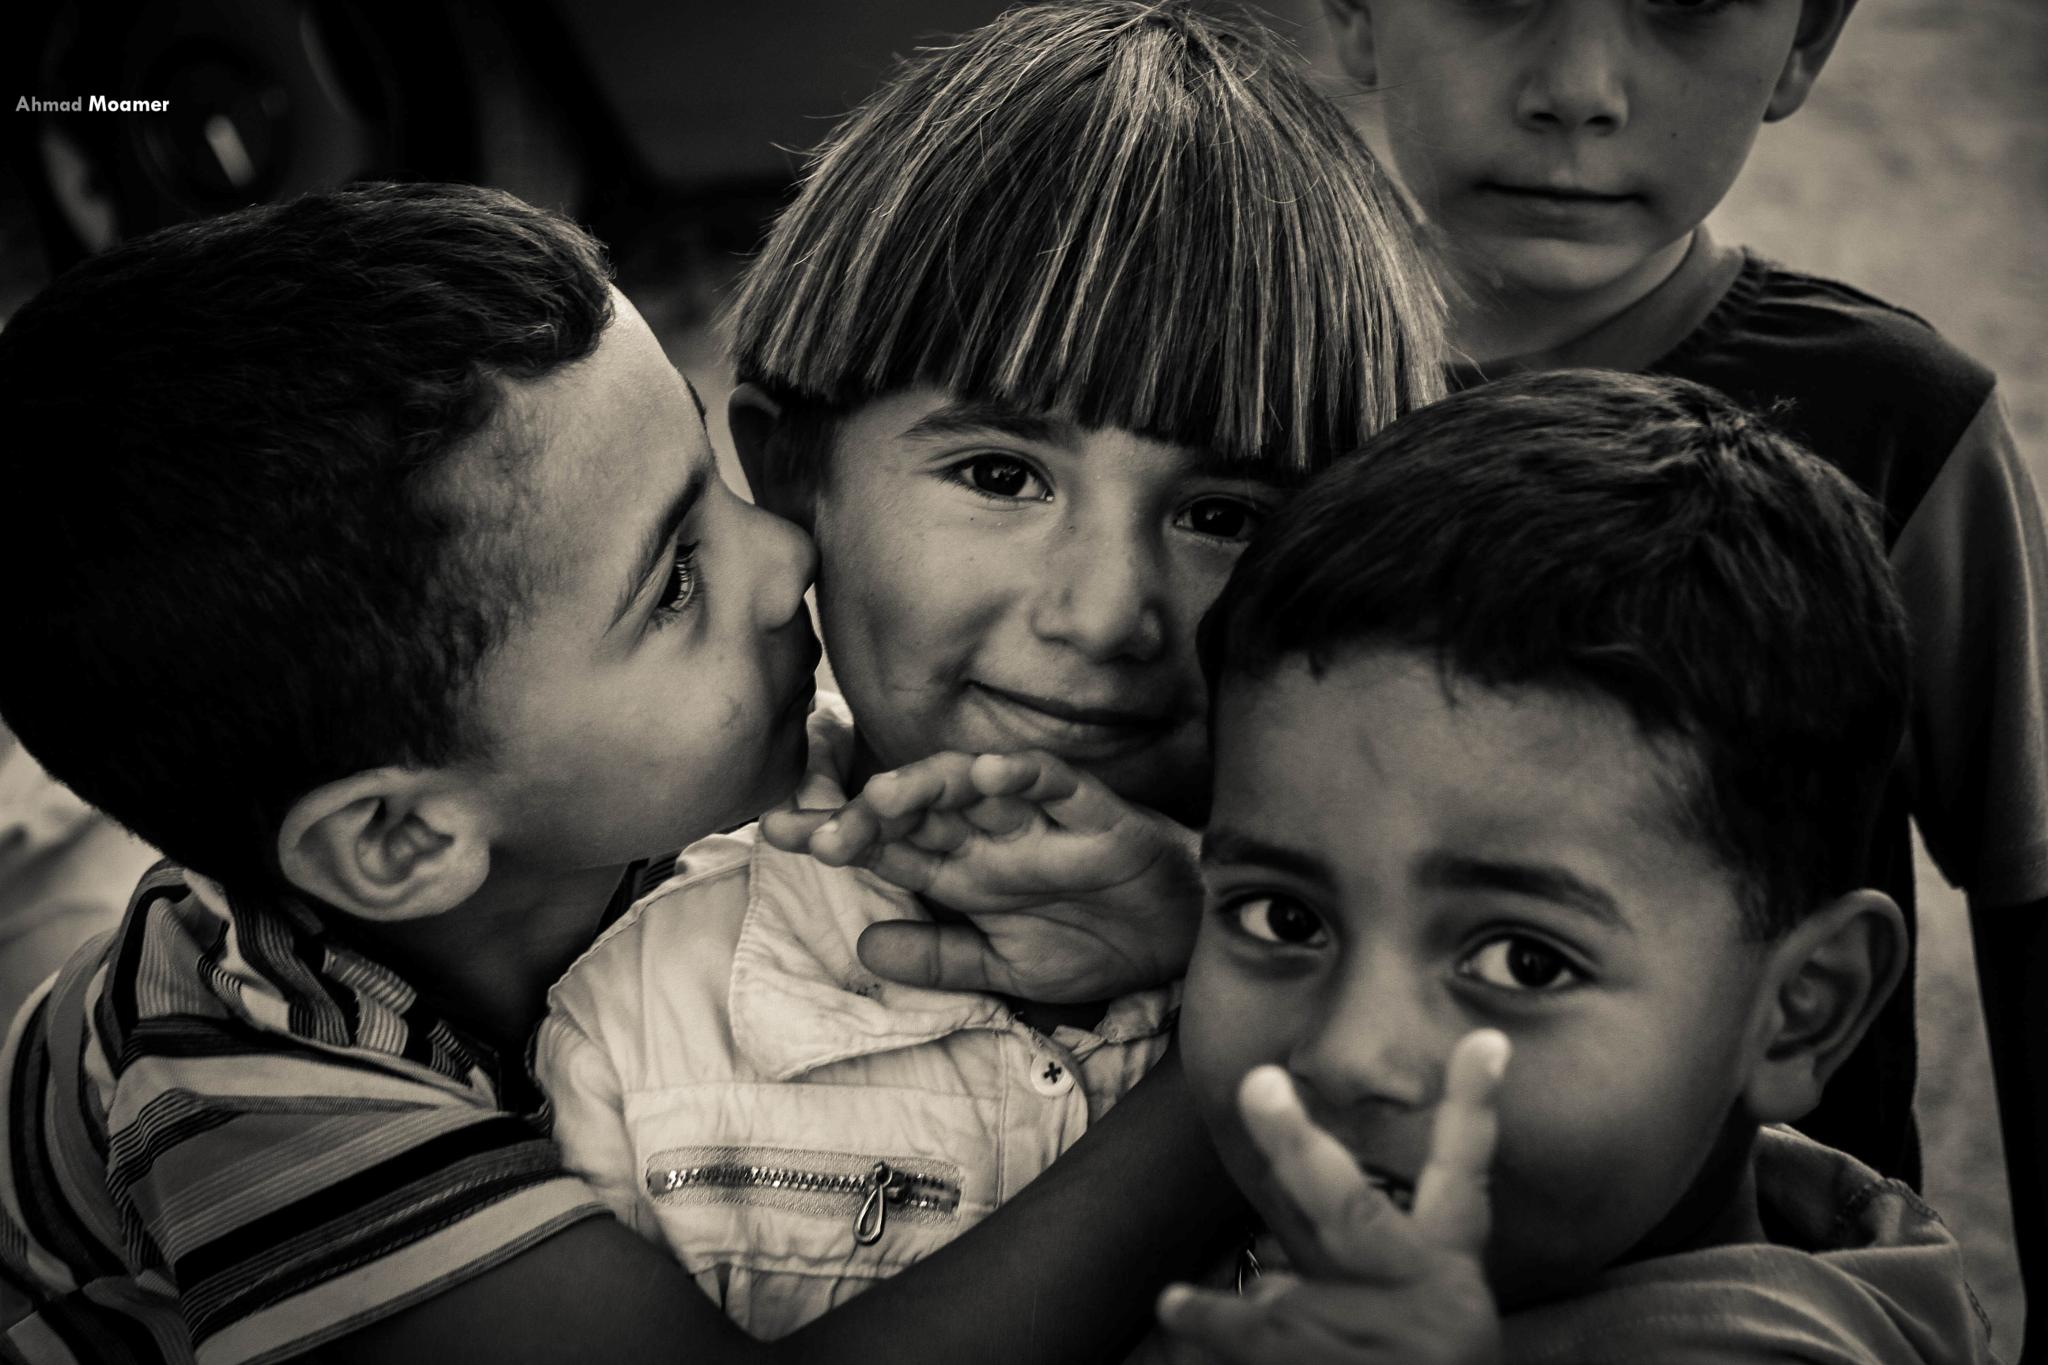 The children of Gaza, where simplicity and innocence in the eyes.  by Ahmad Moamer Photography